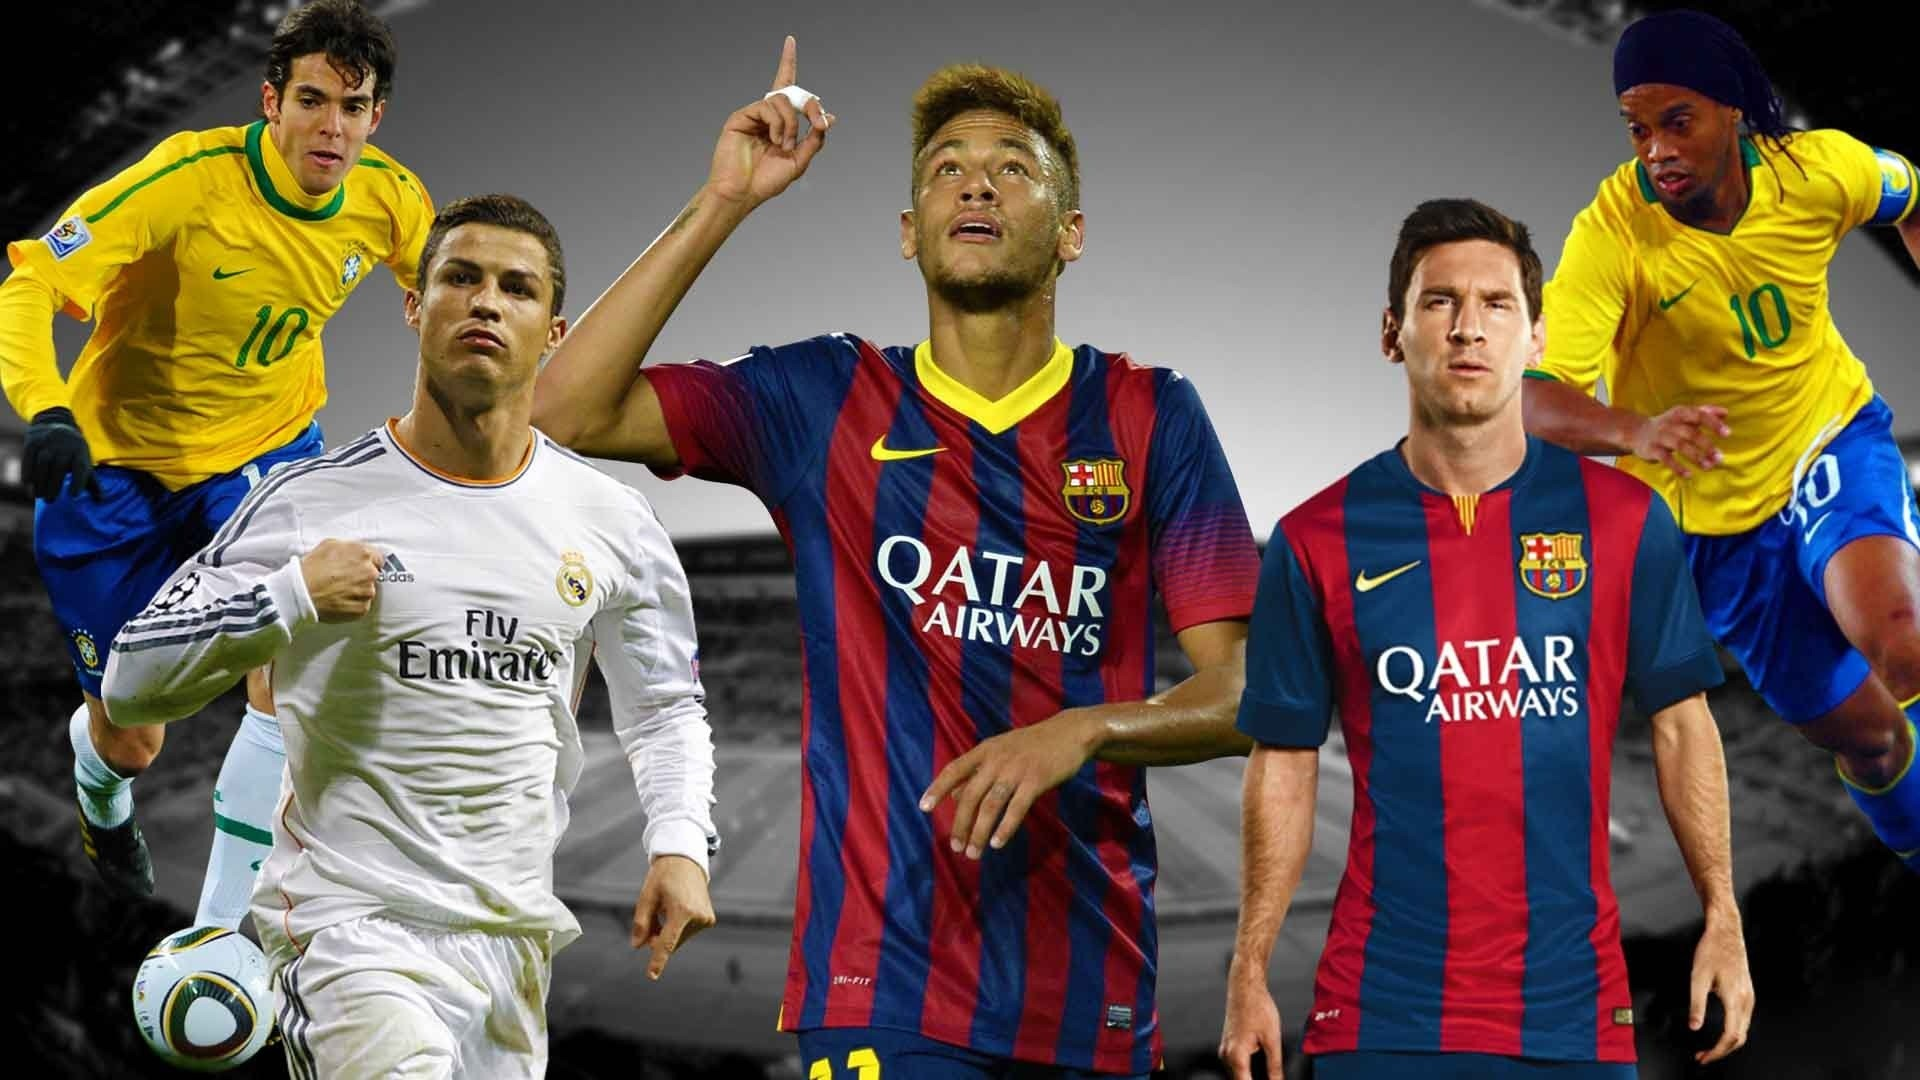 1920x1080 Messi And Ronaldo 2012 Wallpaper HD Free Wallpapers